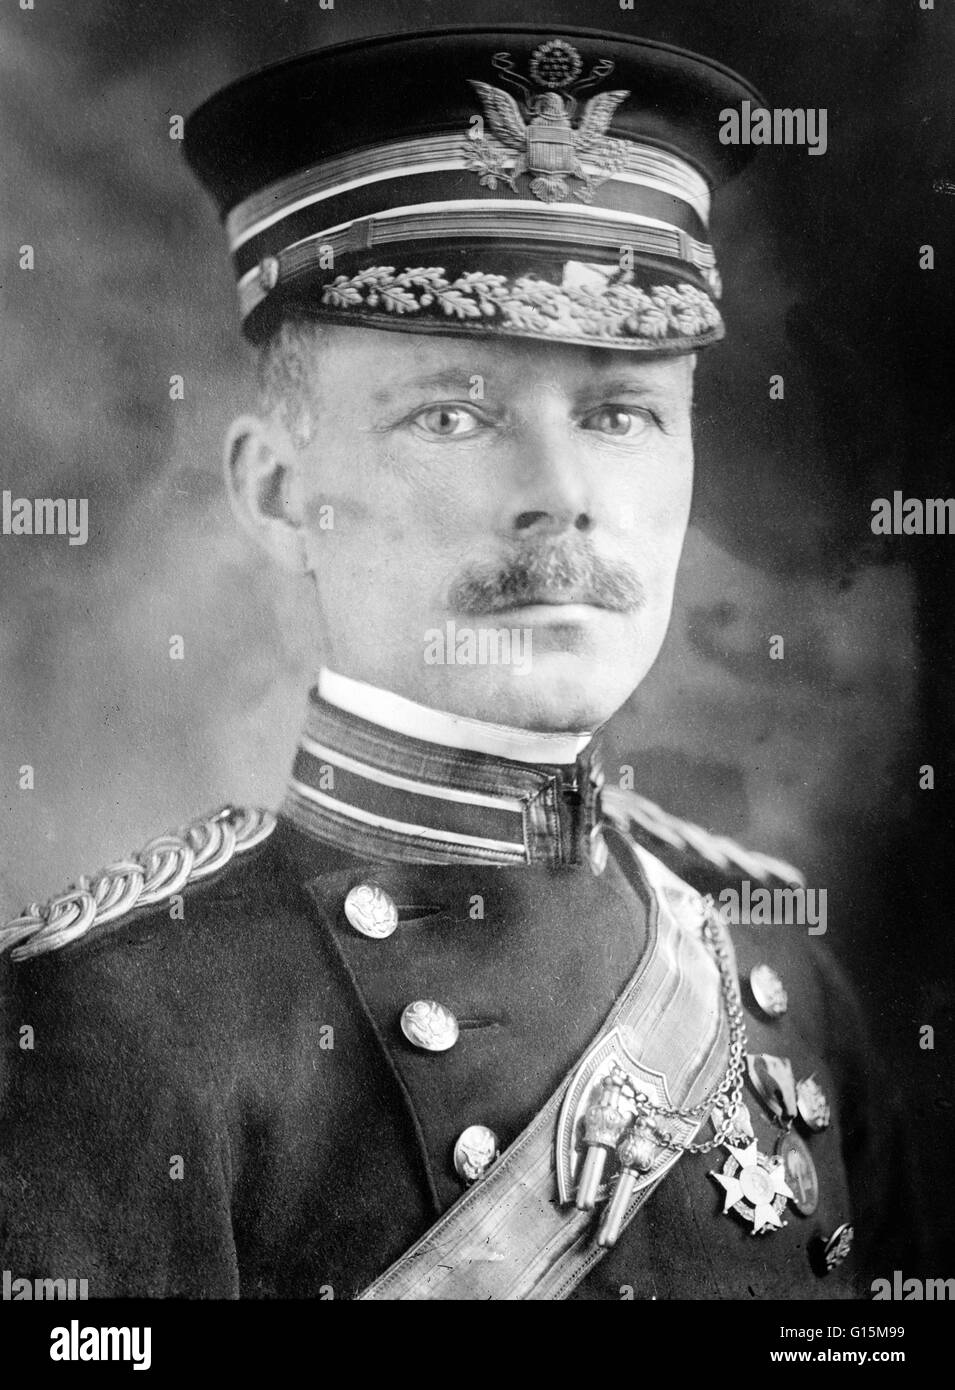 Major General George Owen Squier (March 21, 1865 - March 24, 1934) graduated from the United States Military Academy - Stock Image